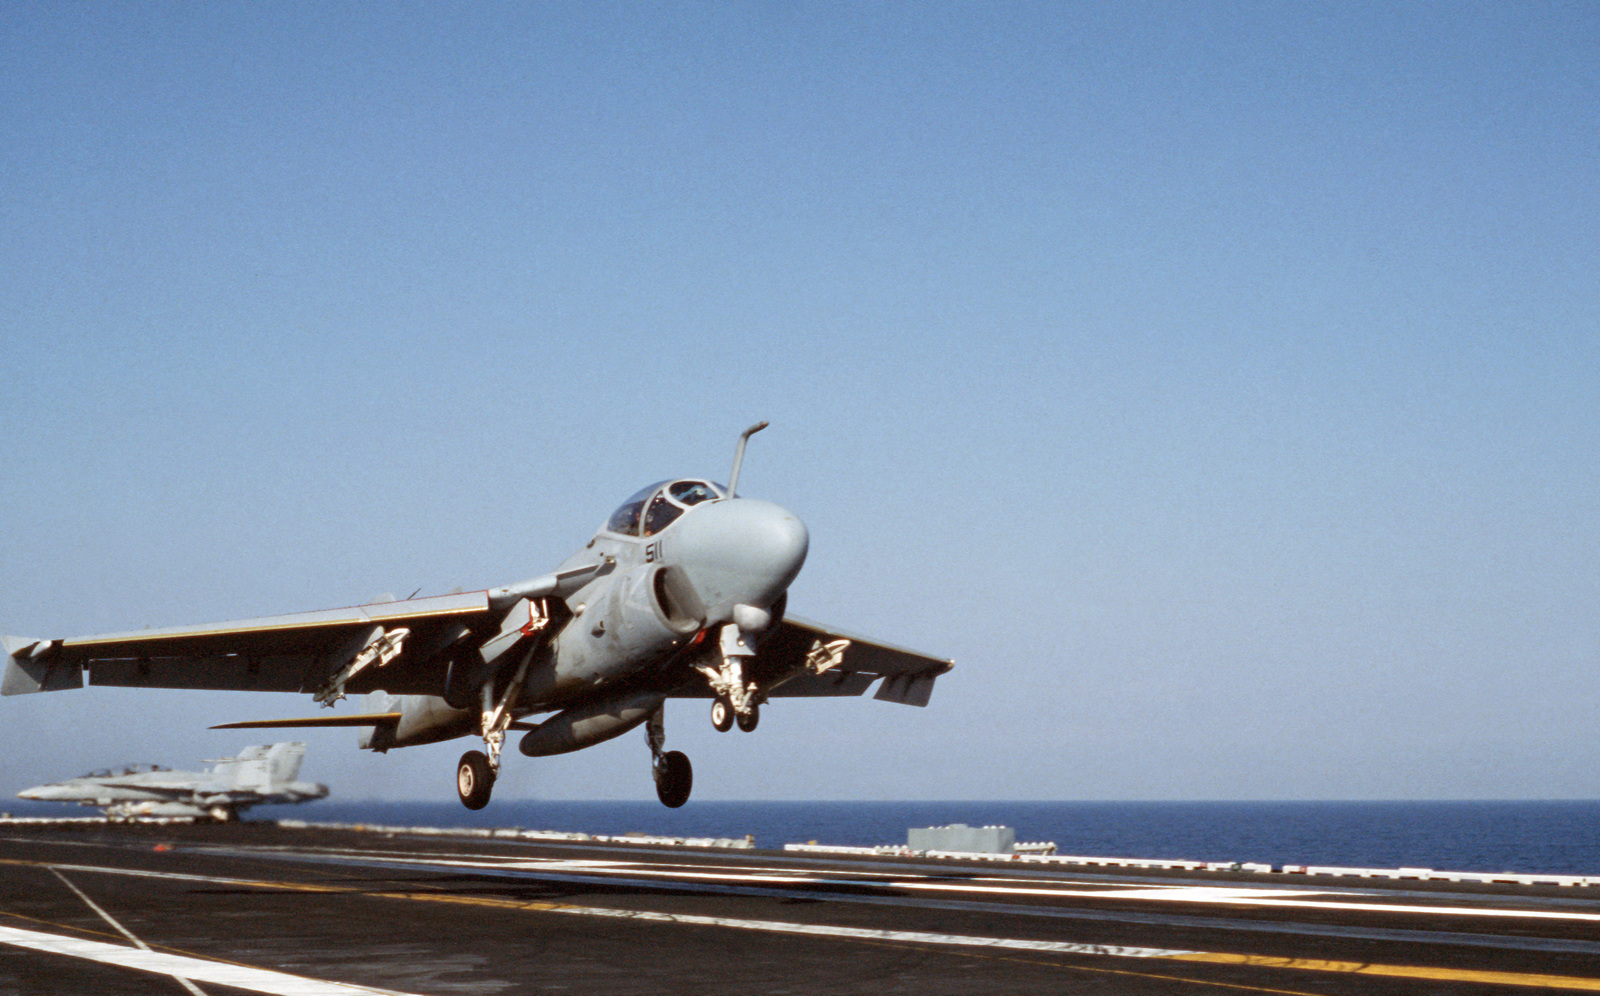 """A Strike-Fighter Squadron 111 (VFA-111) A-6E Intruder aircraft executes a """"touch and go"""" landing aboard the nuclear-powered aircraft carrier USS DWIGHT D. EISENHOWER (CVN 69)"""